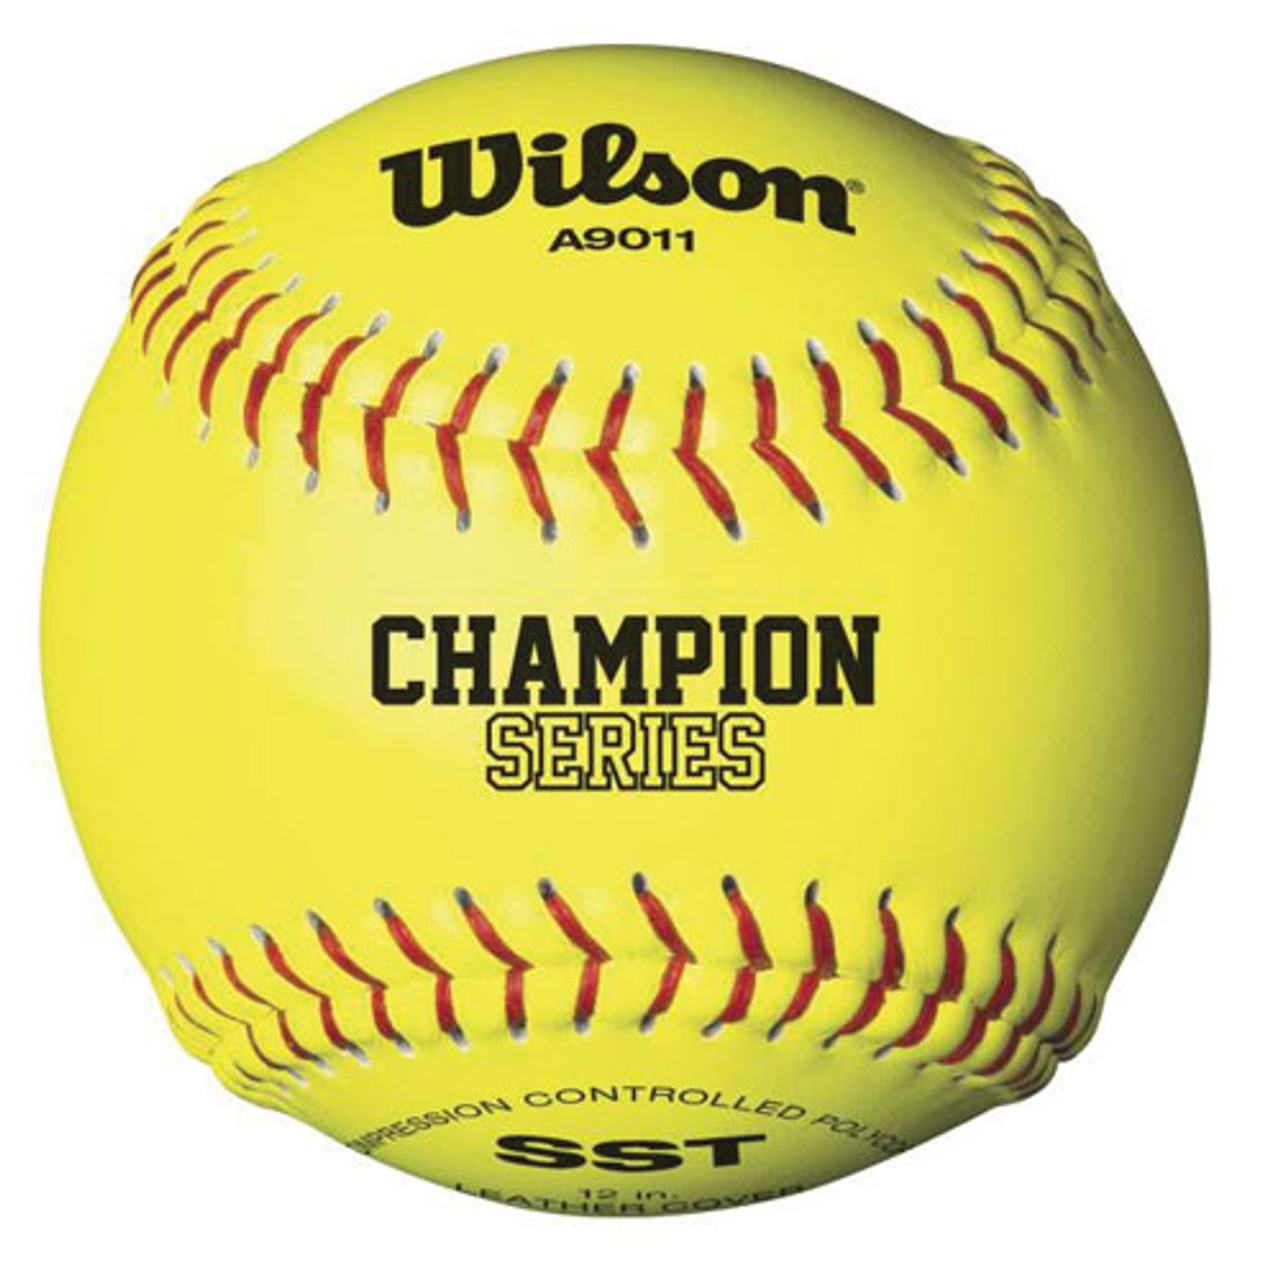 Wilson NFHS Fastpitch Softball